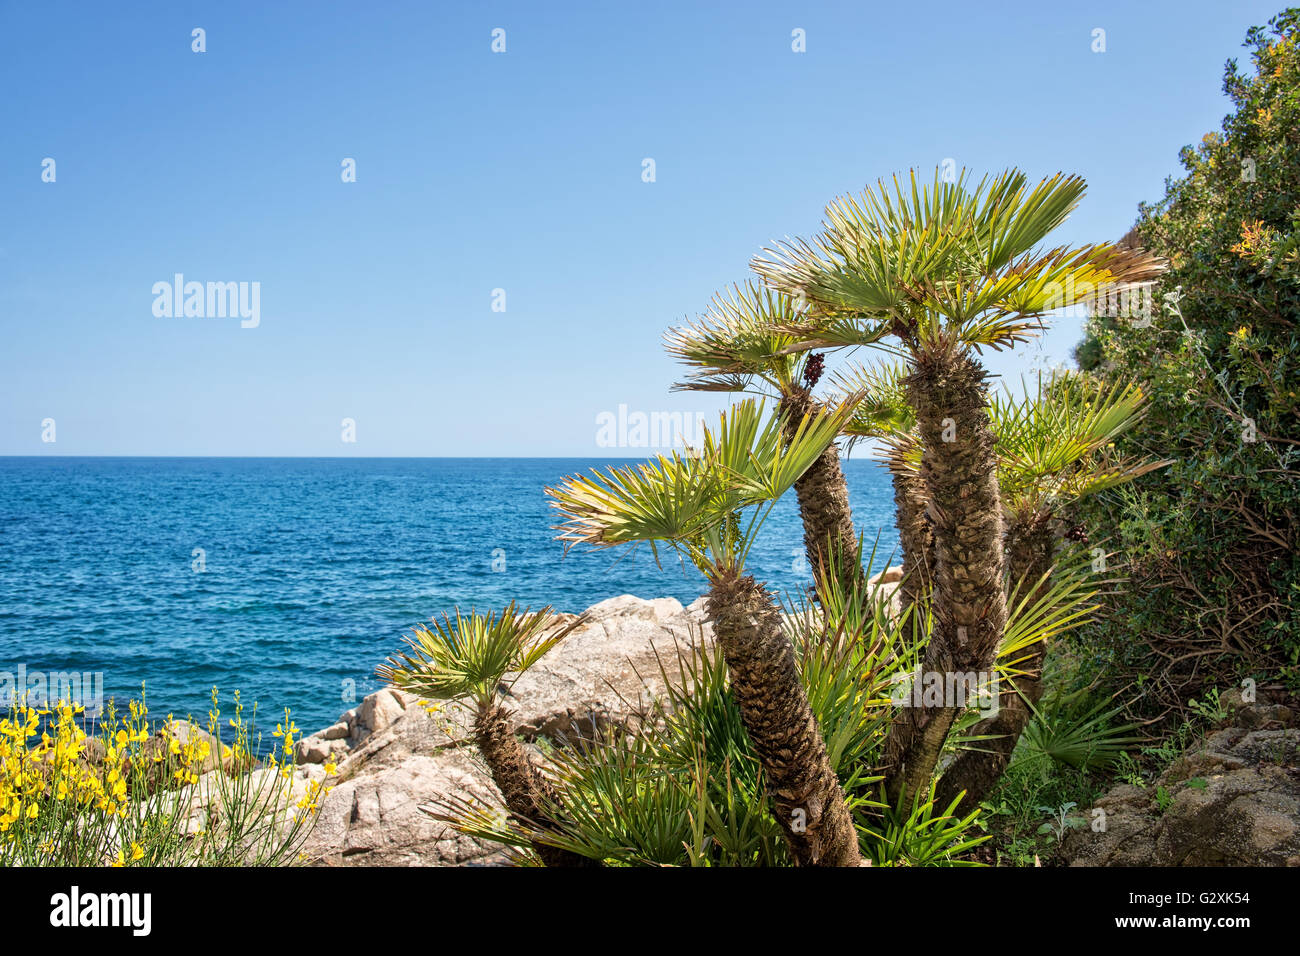 Mediterranean seascape with rocks and palm trees - Stock Image